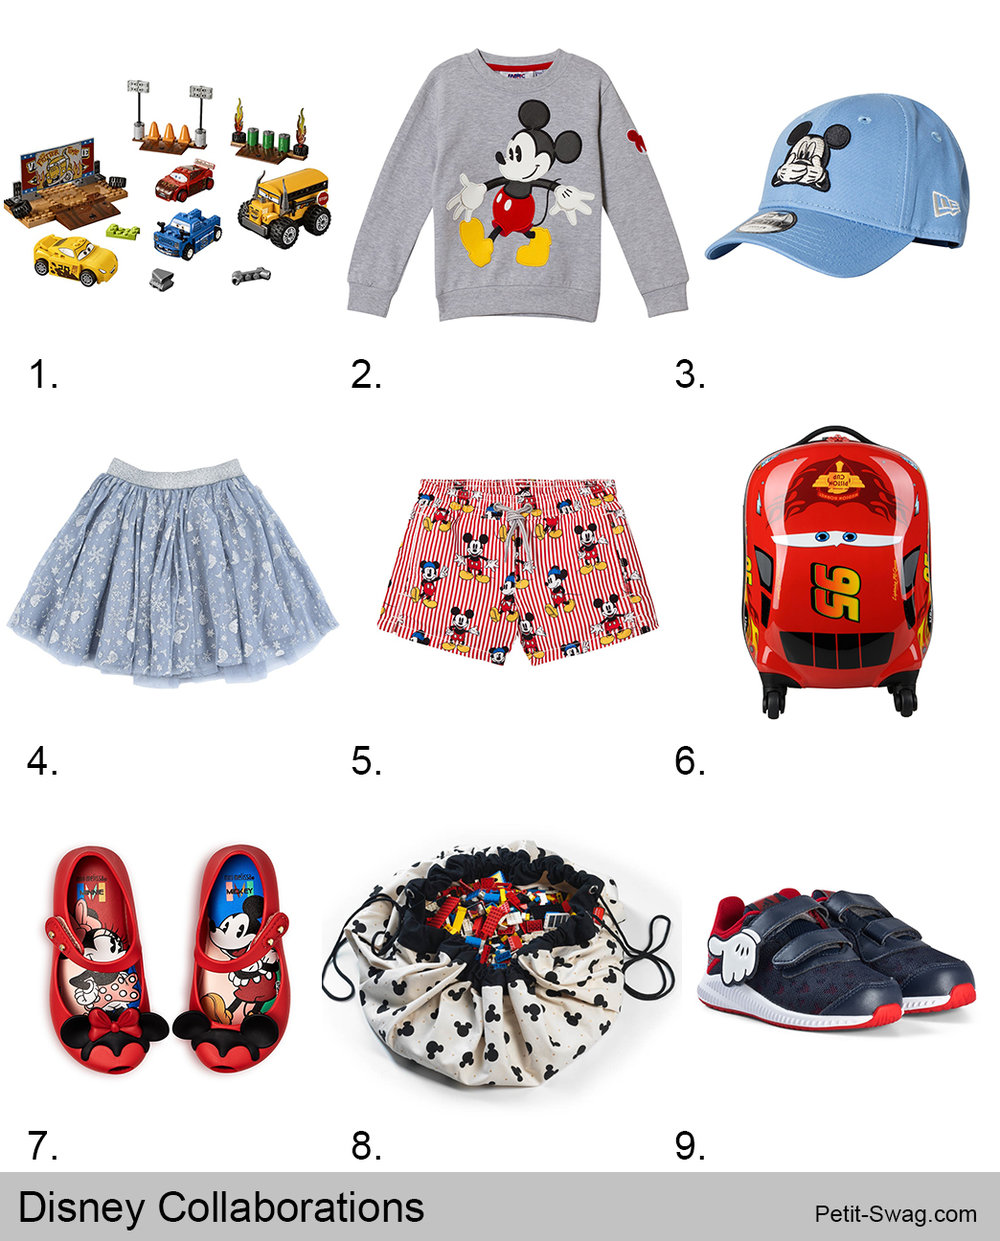 Disney Collaborations | petit-swag.com